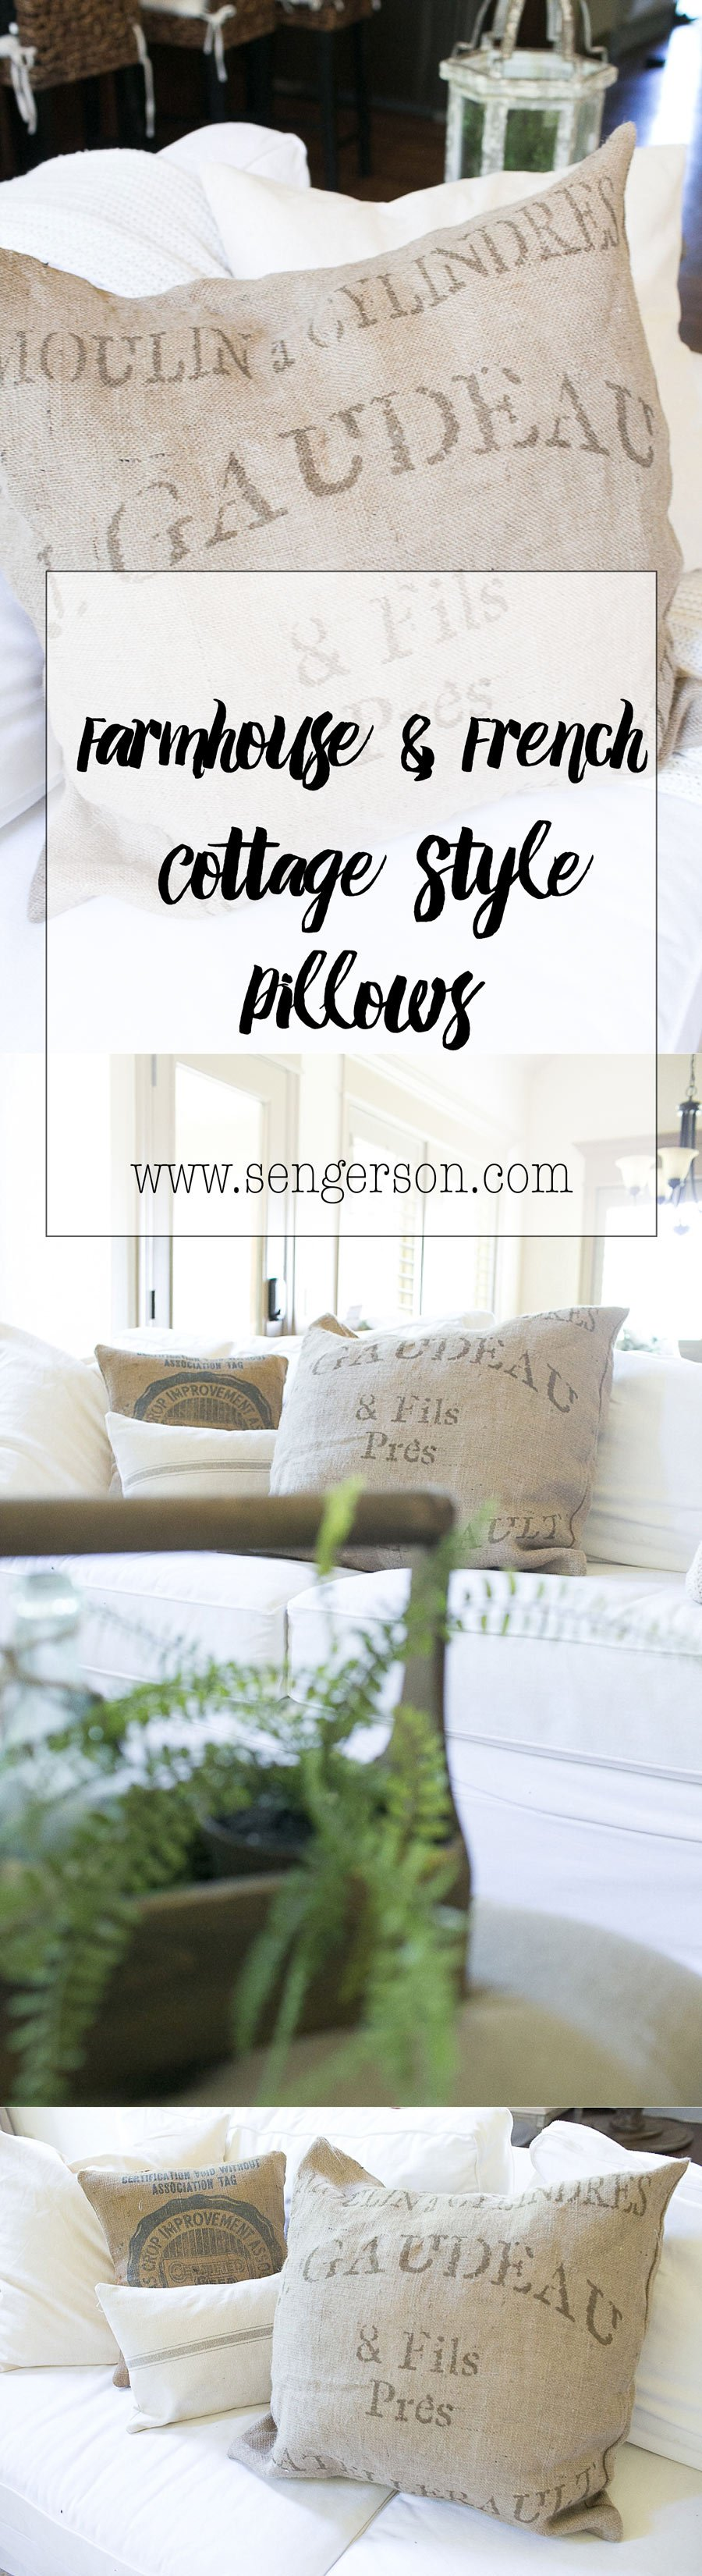 farmhouse style pillows french cottage